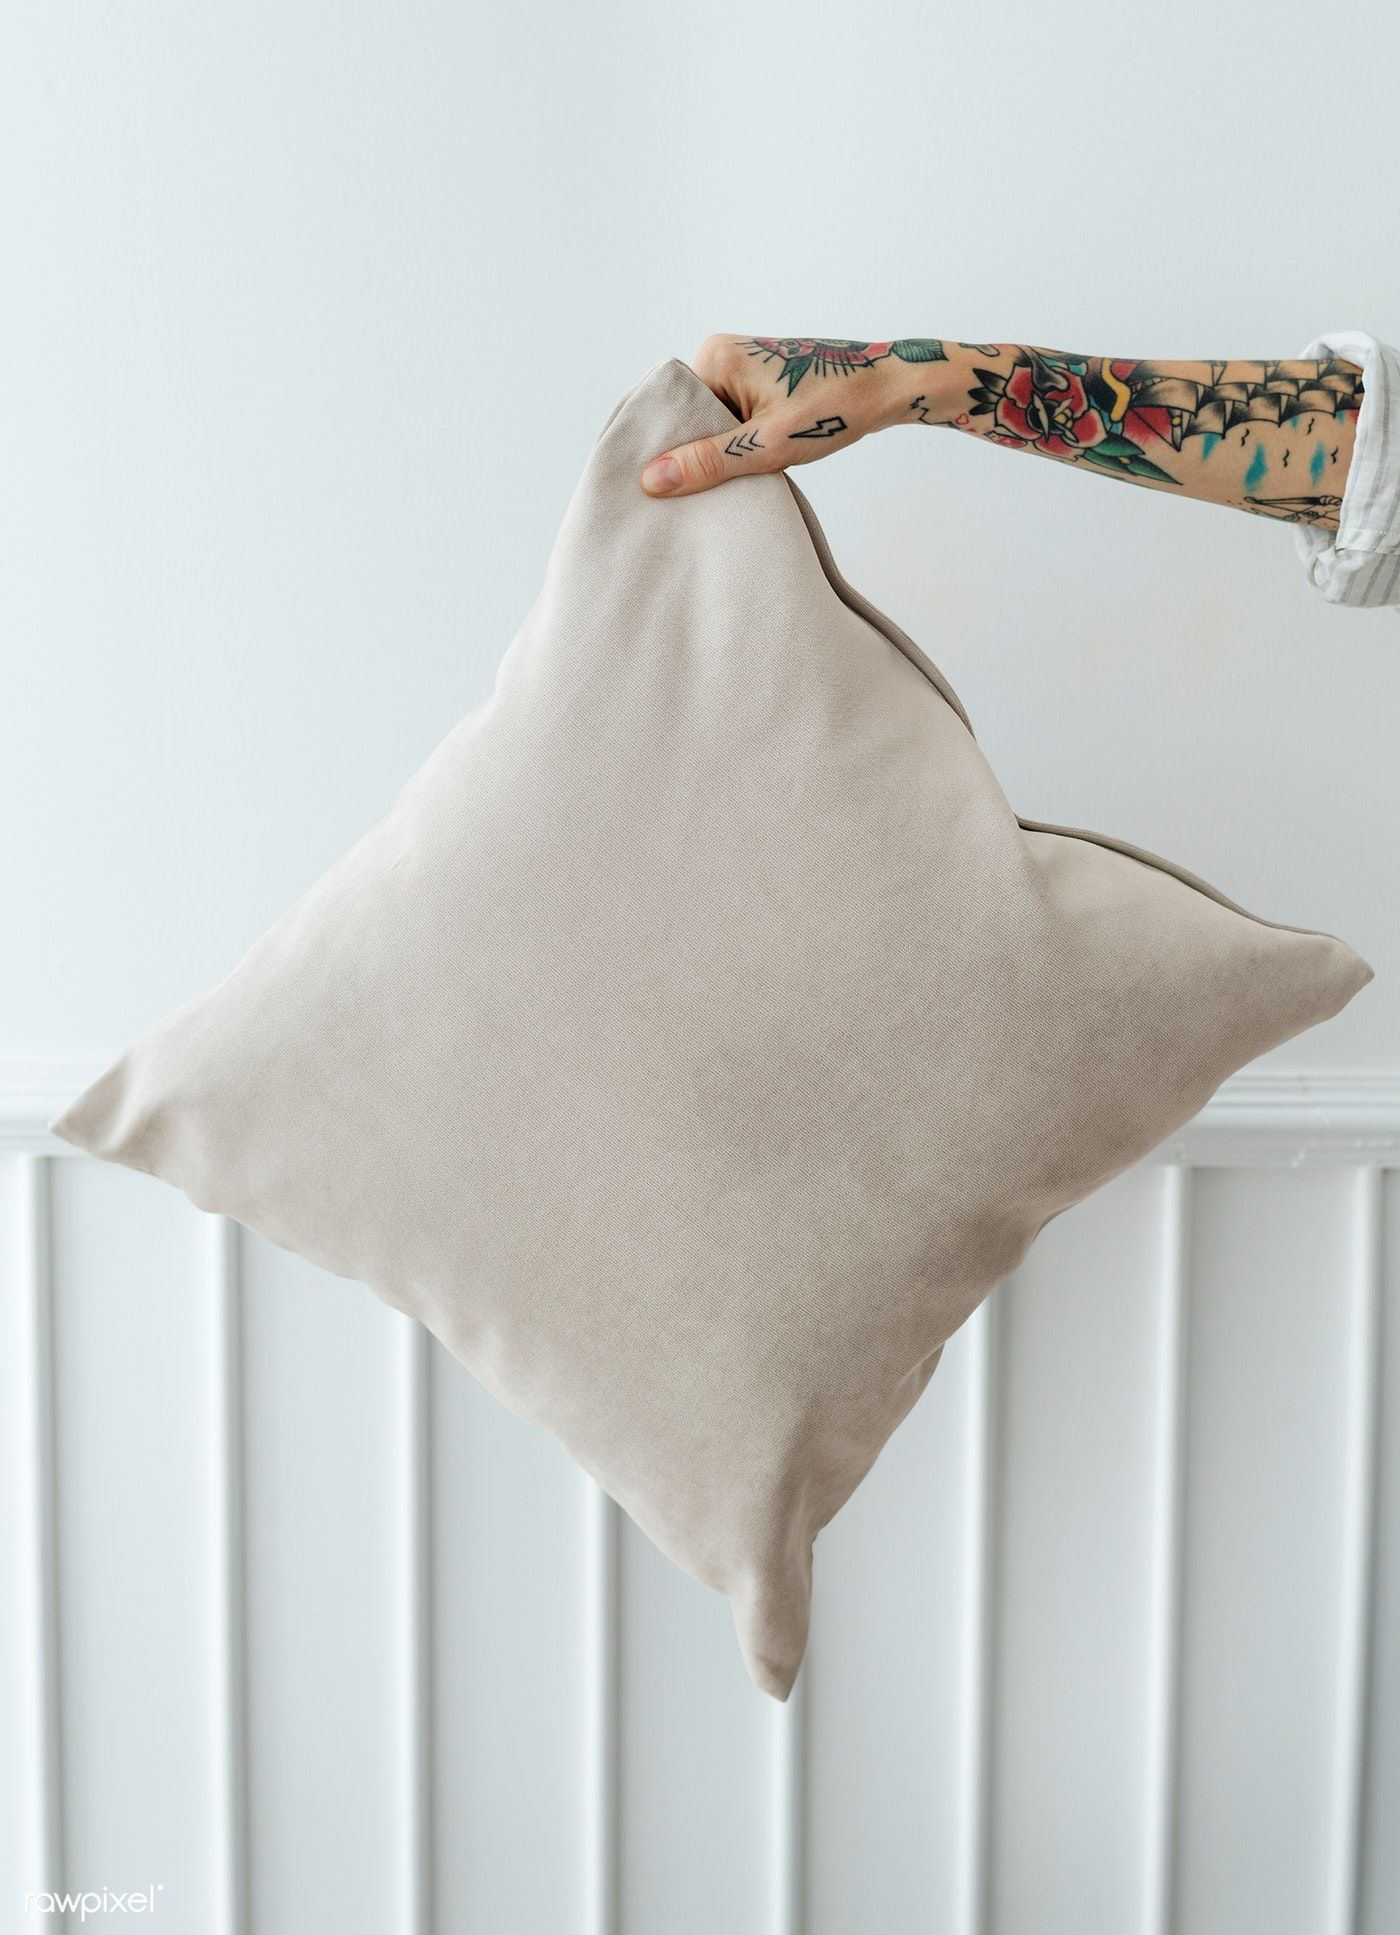 Download Premium Psd Of Tattooed Woman Holding A Cream Pillow Mockup Cream Pillows Design Mockup Free Pillows